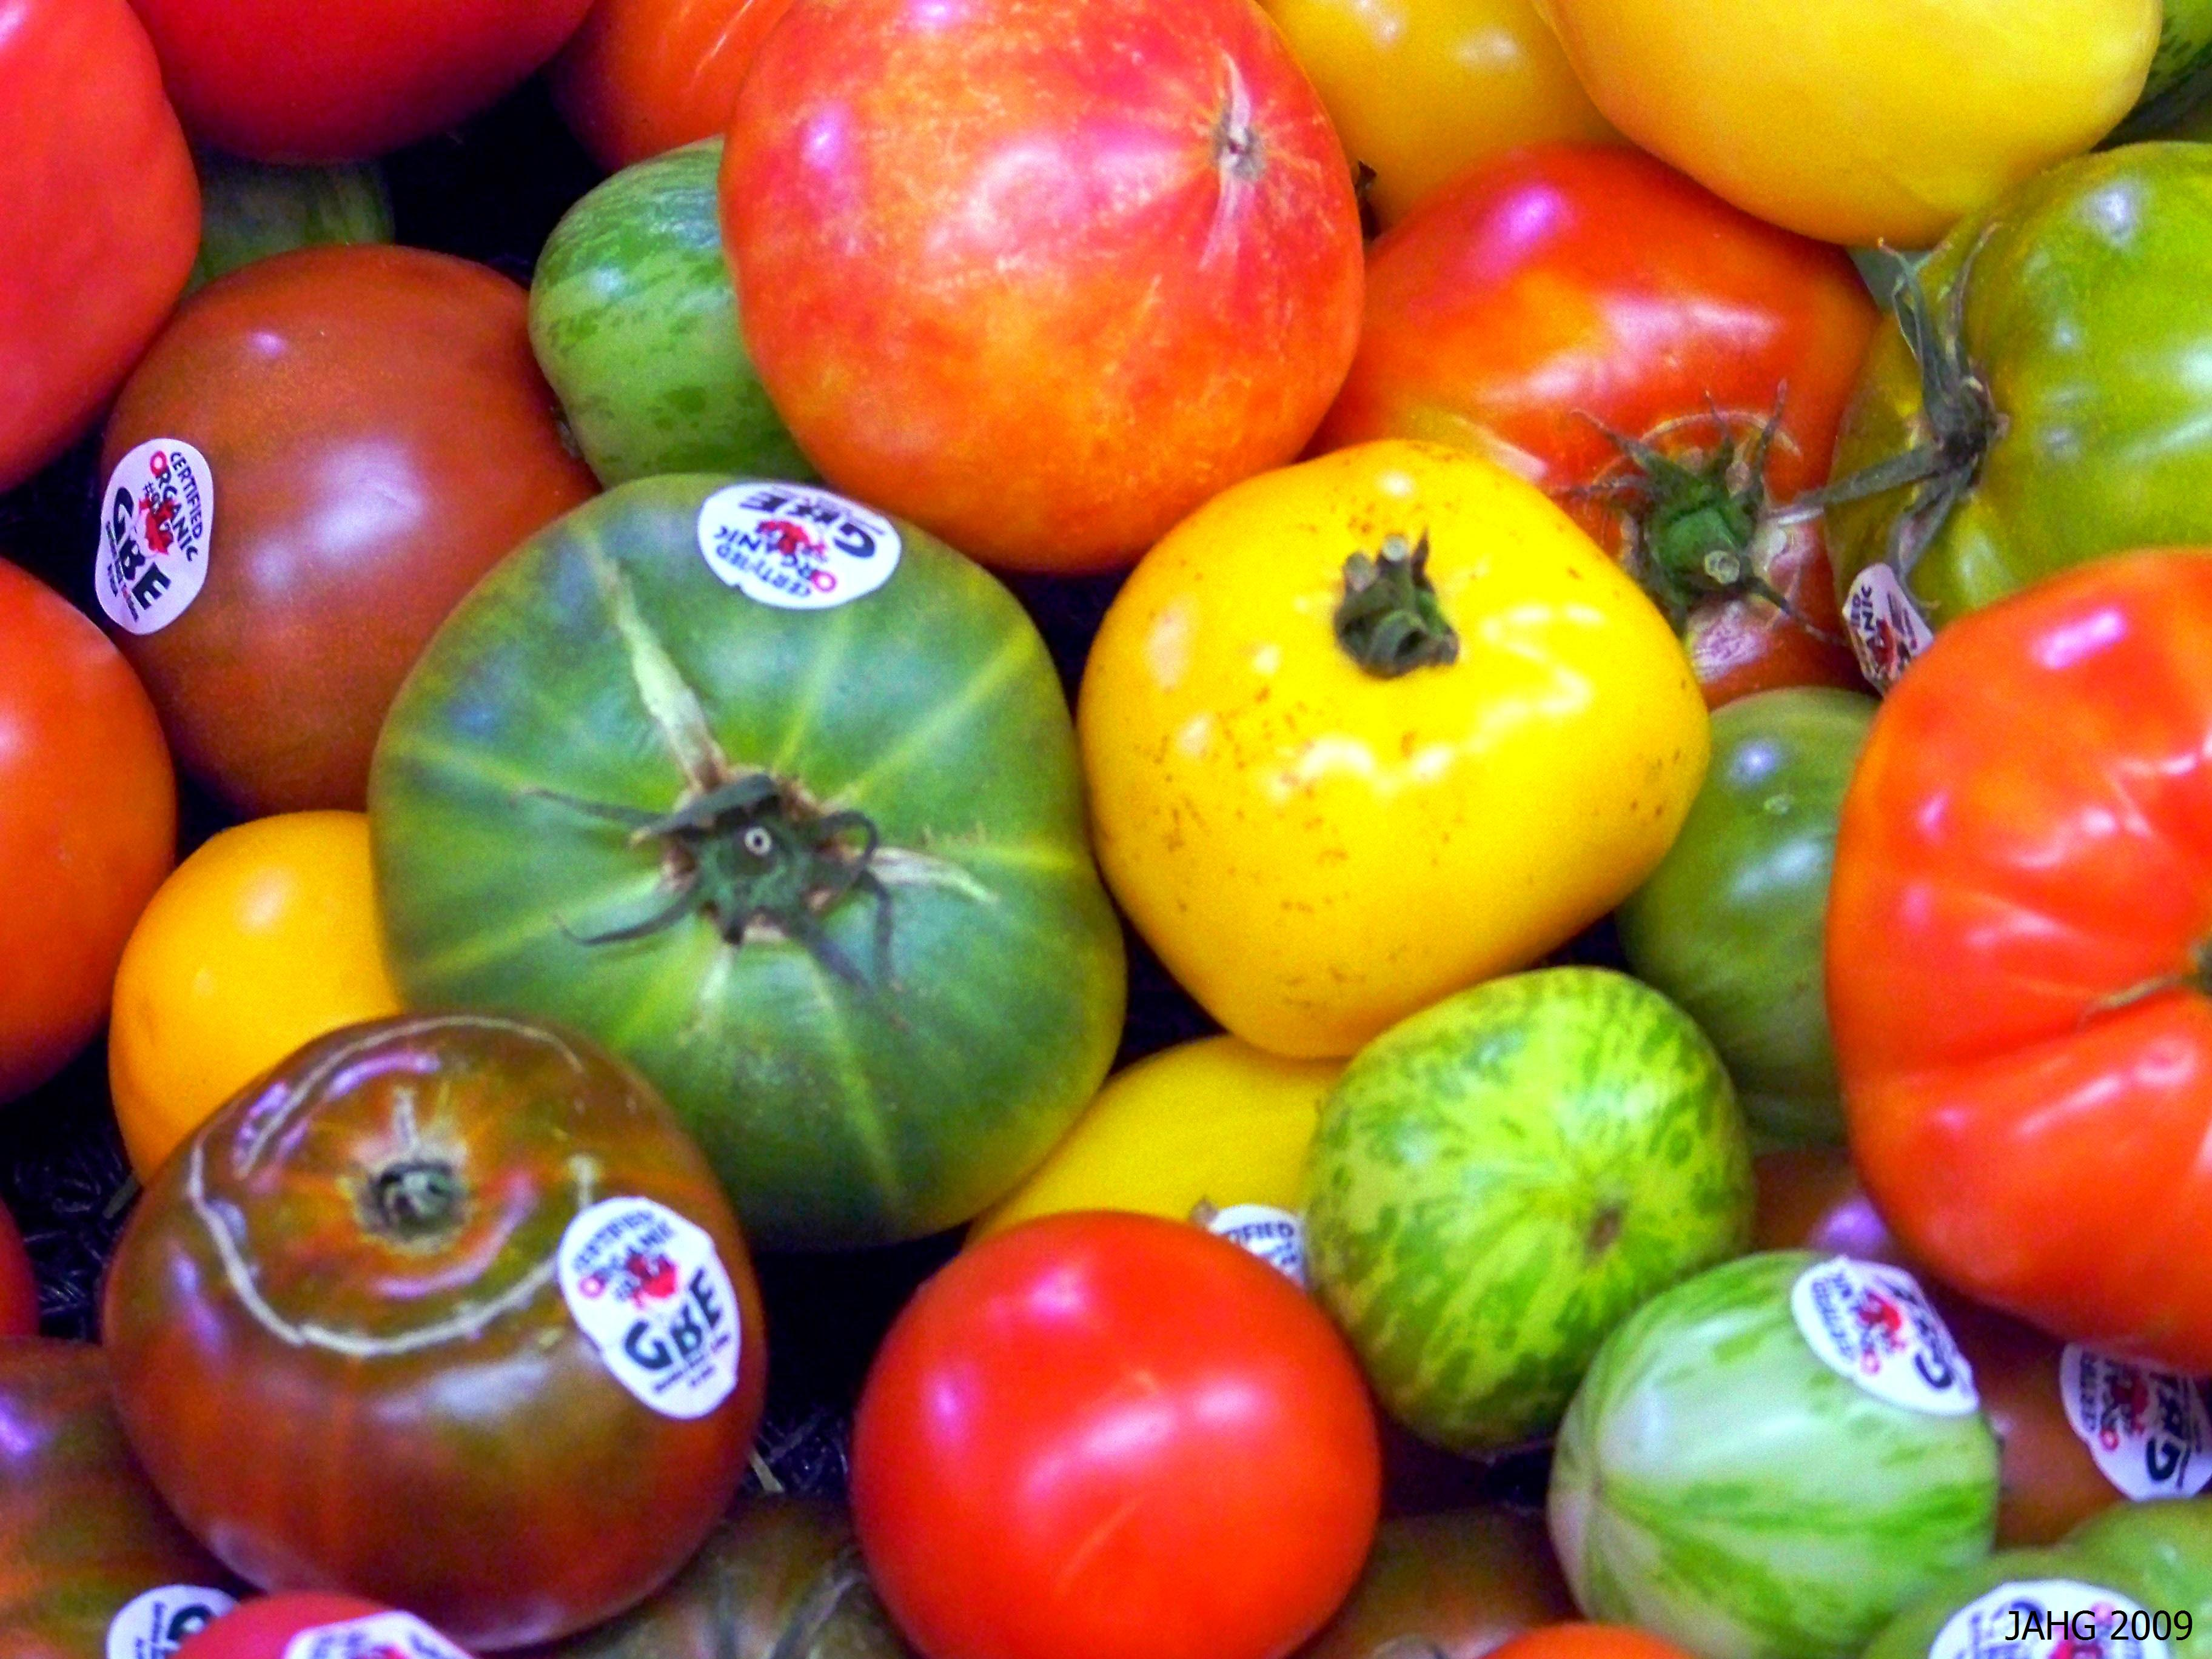 The many forms of heritage Tomatoes now available again for all to enjoy.